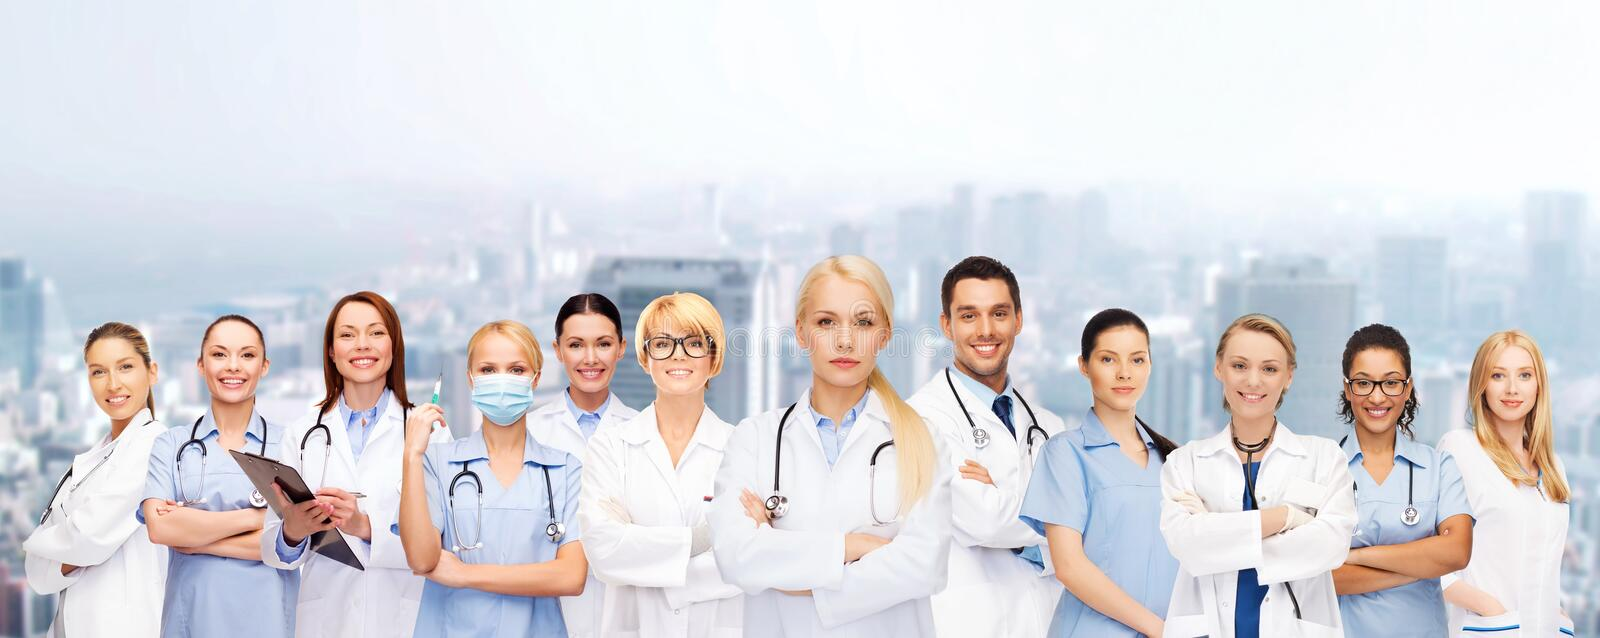 Download Team Or Group Of Doctors And Nurses Stock Image - Image of happy, background: 47520375